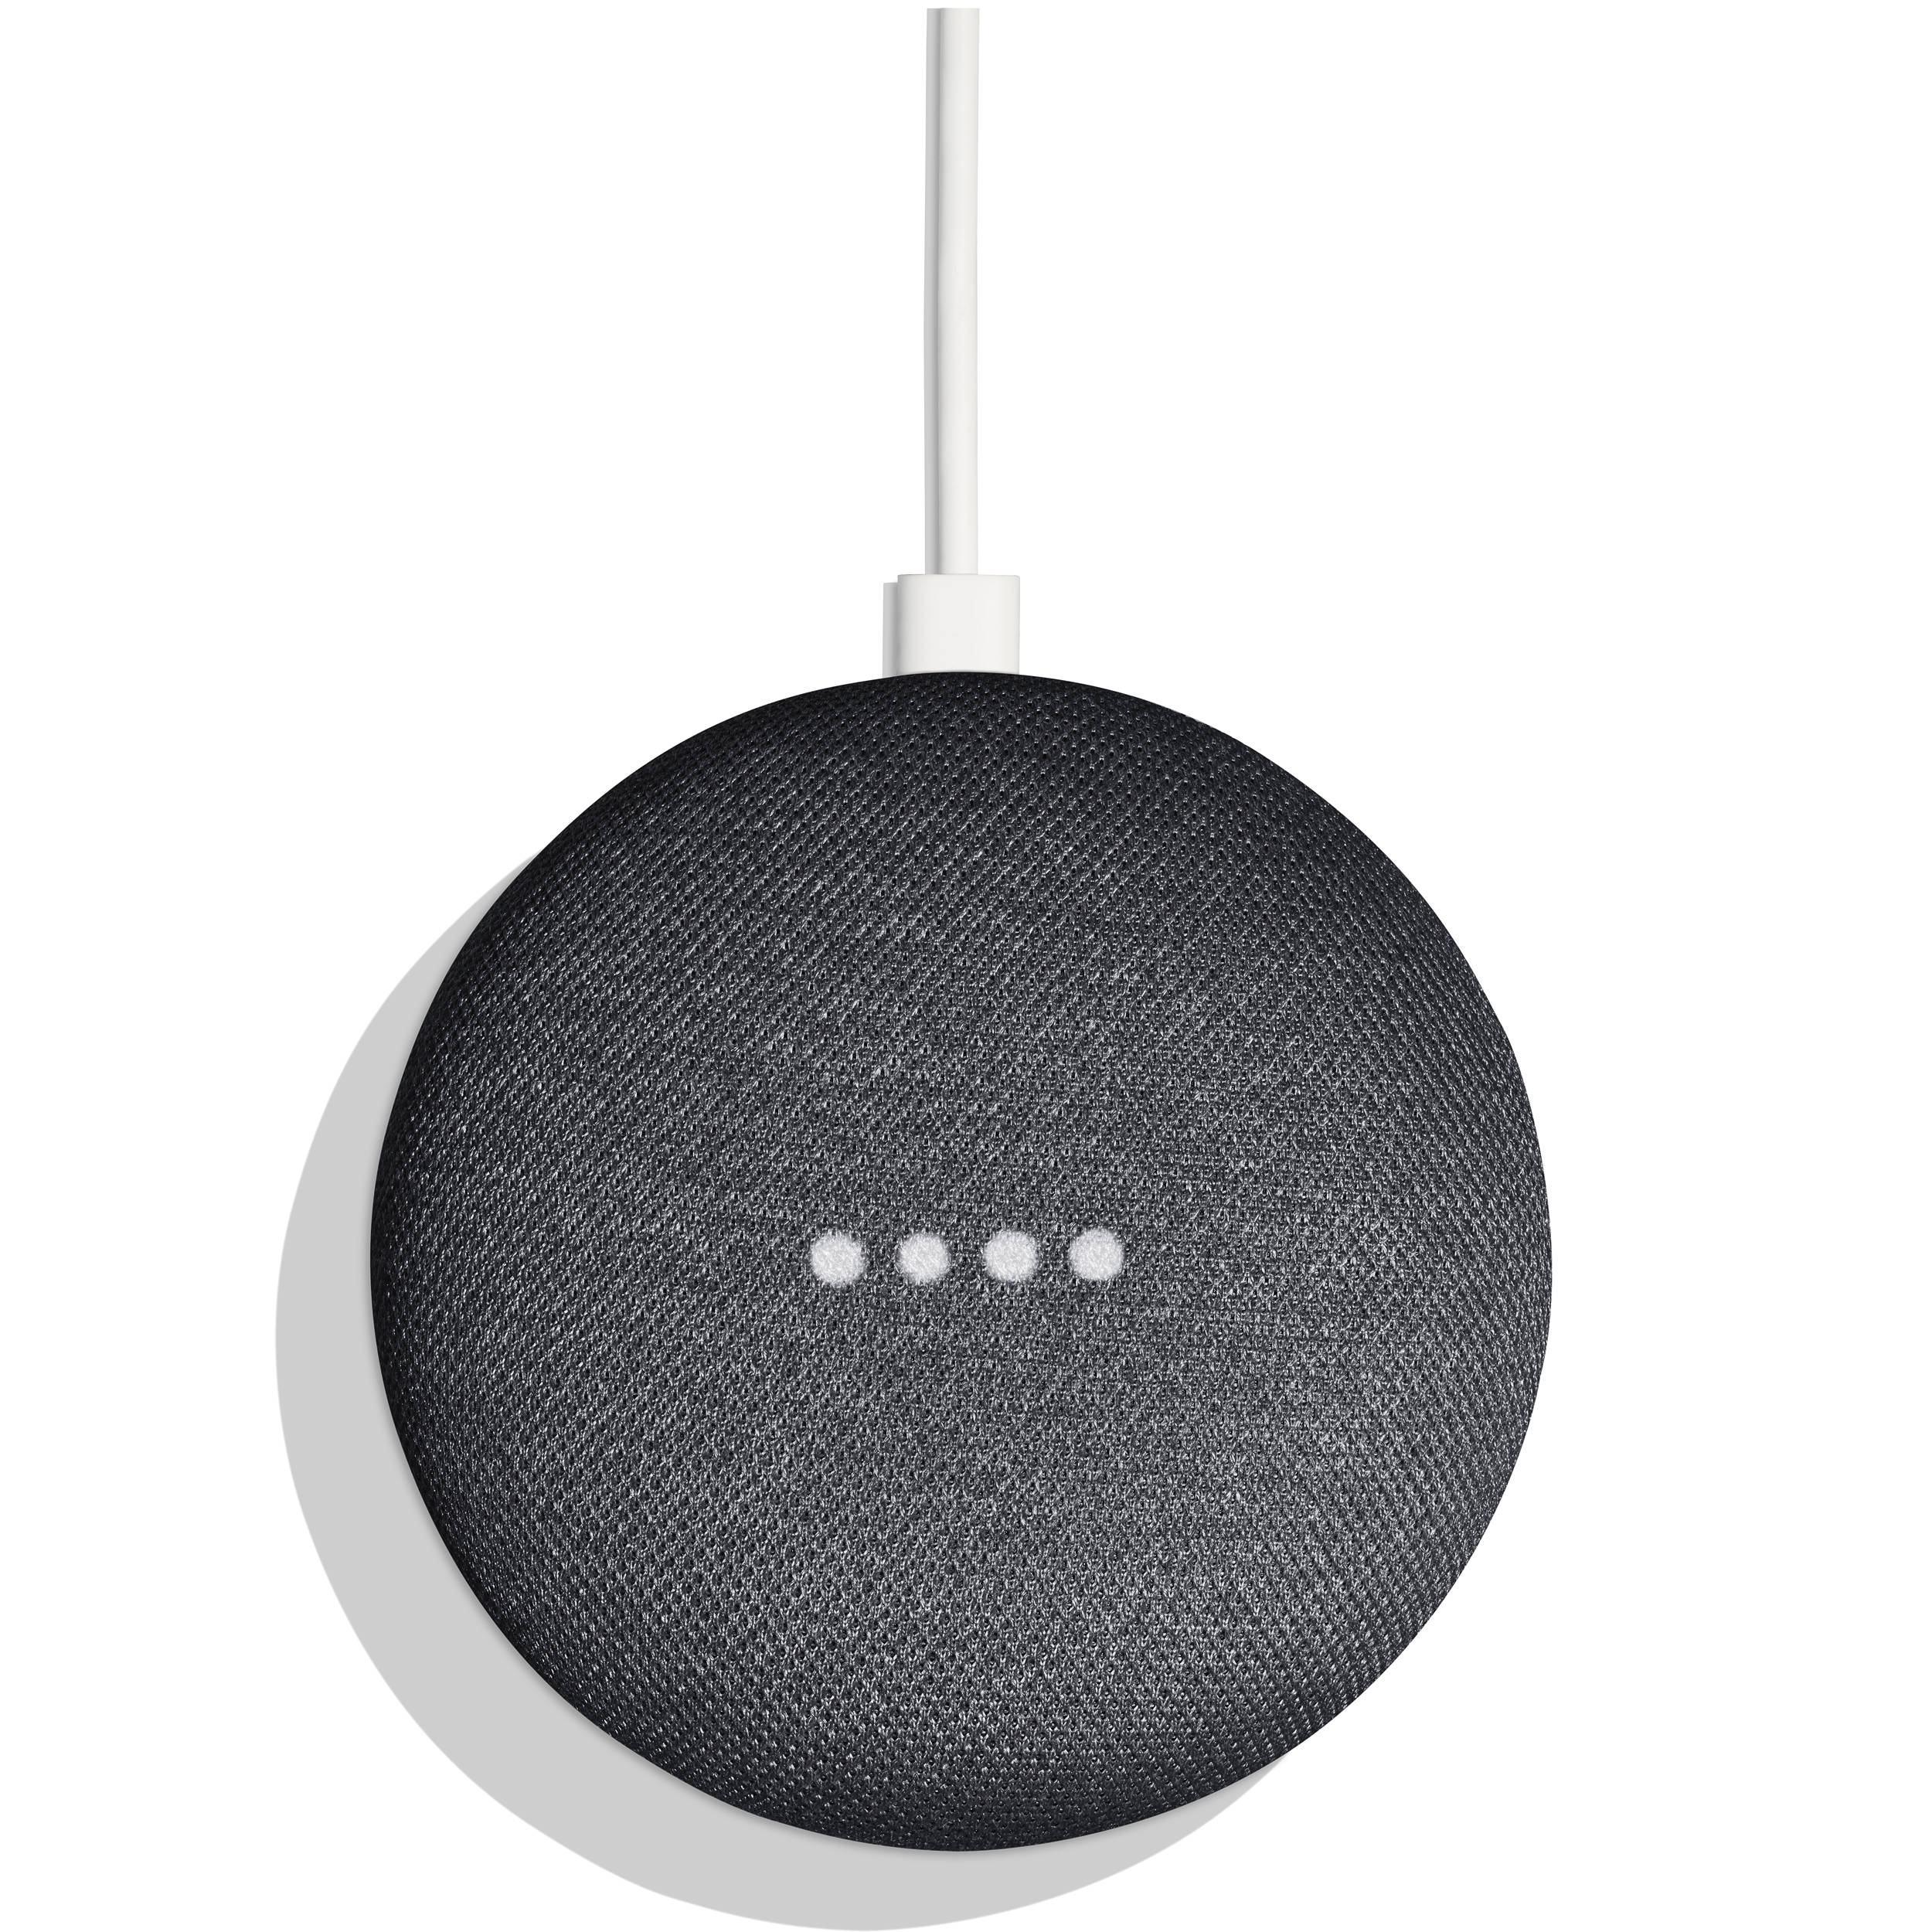 Google home mini charcoal ga00216 us b h photo video for Google home mini